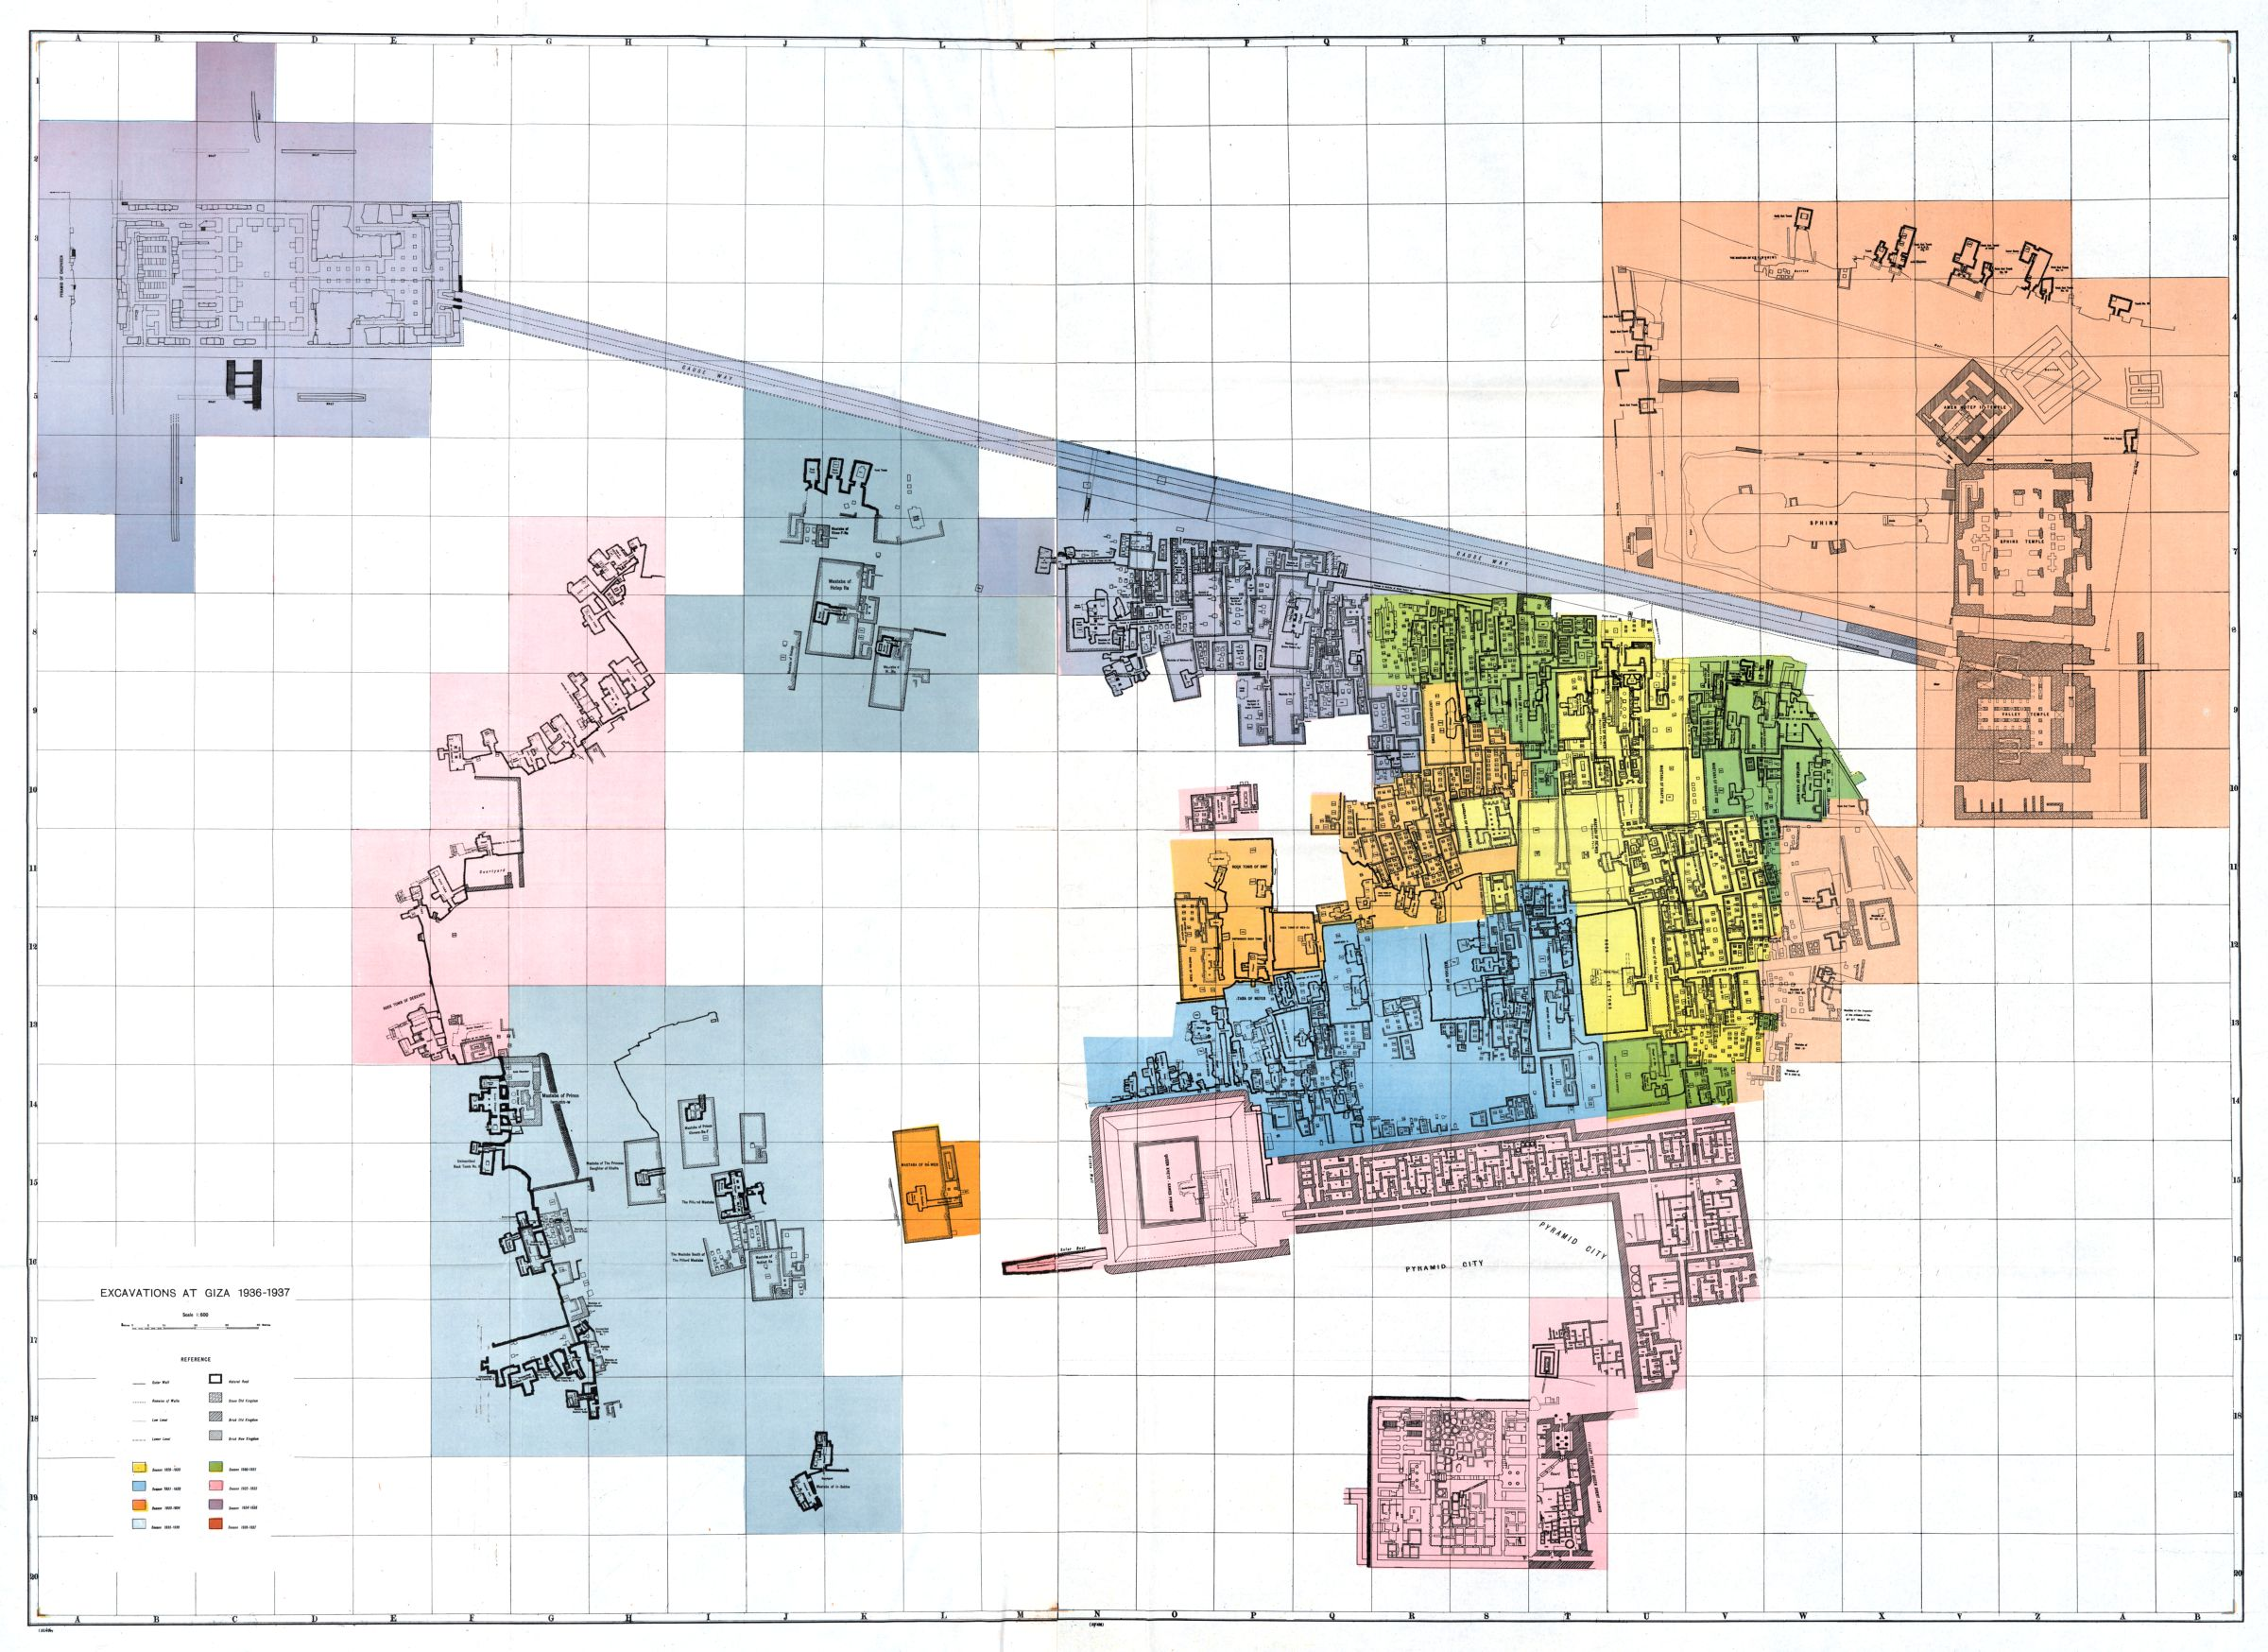 Maps and plans: General Plan of Central Field